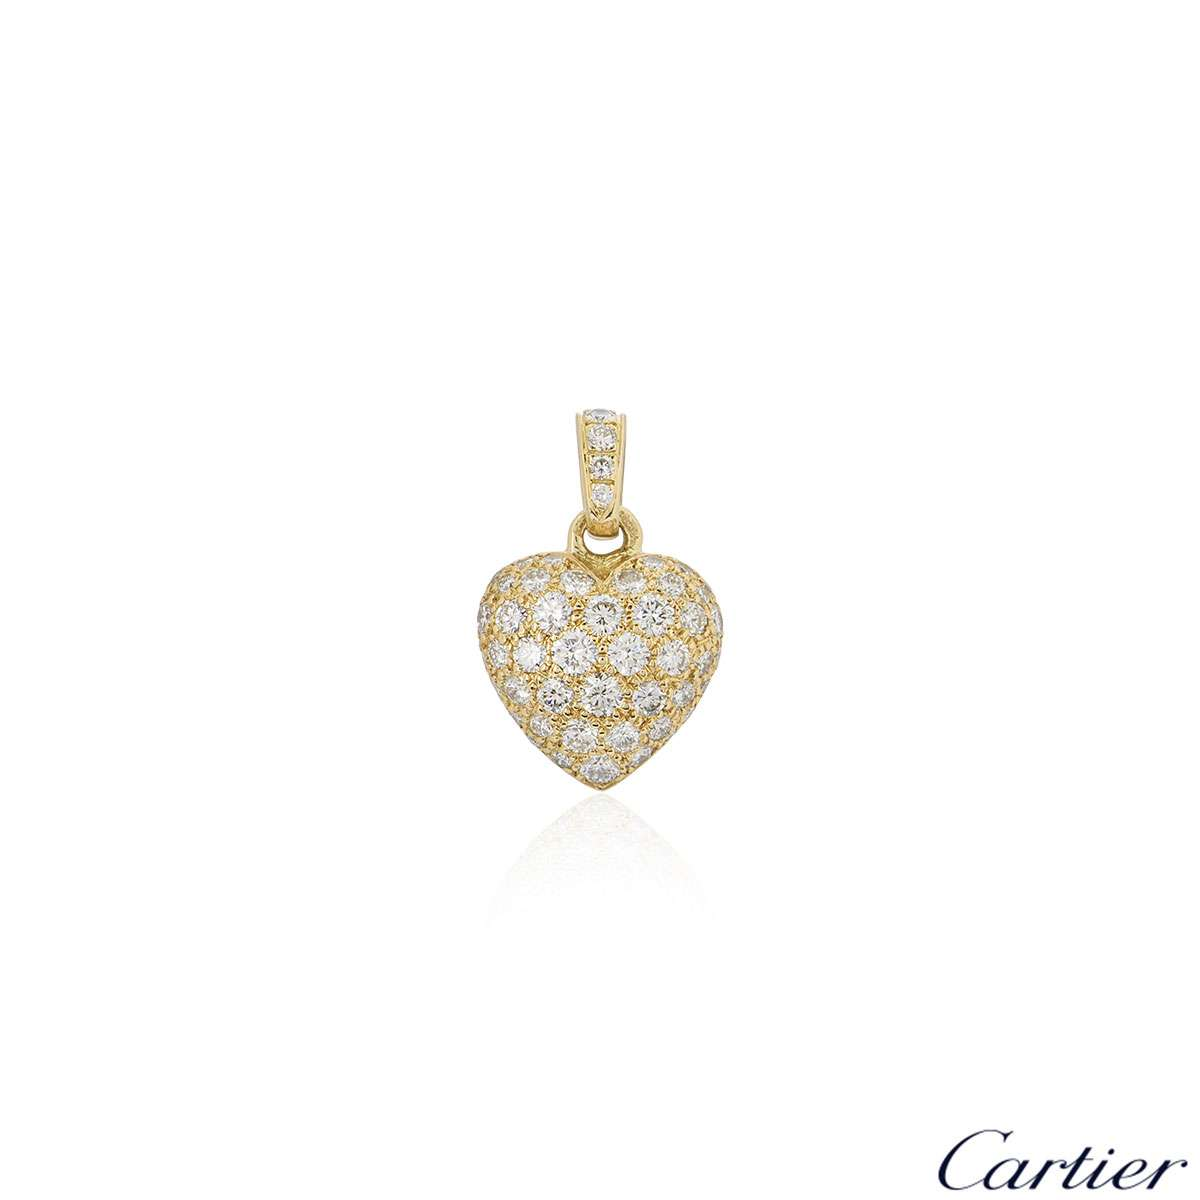 Cartier Yellow Gold Diamond Heart Charm